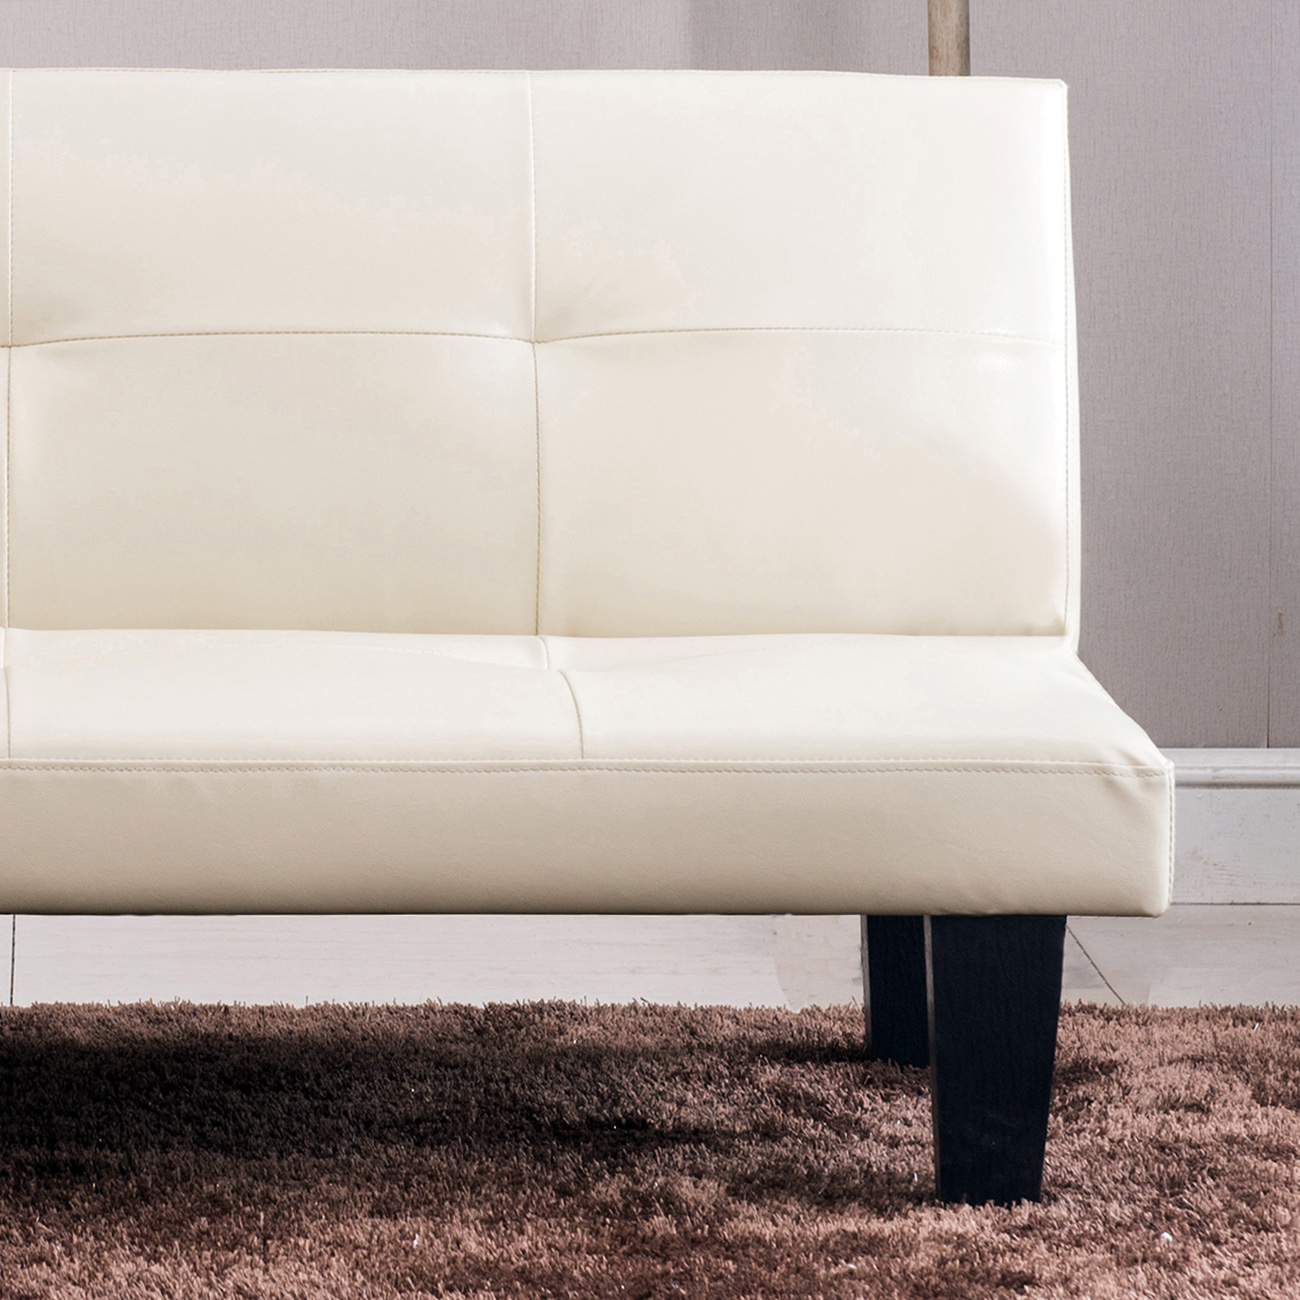 new portland convertible sleeper sofa washable futon bed couch loveseat dorm